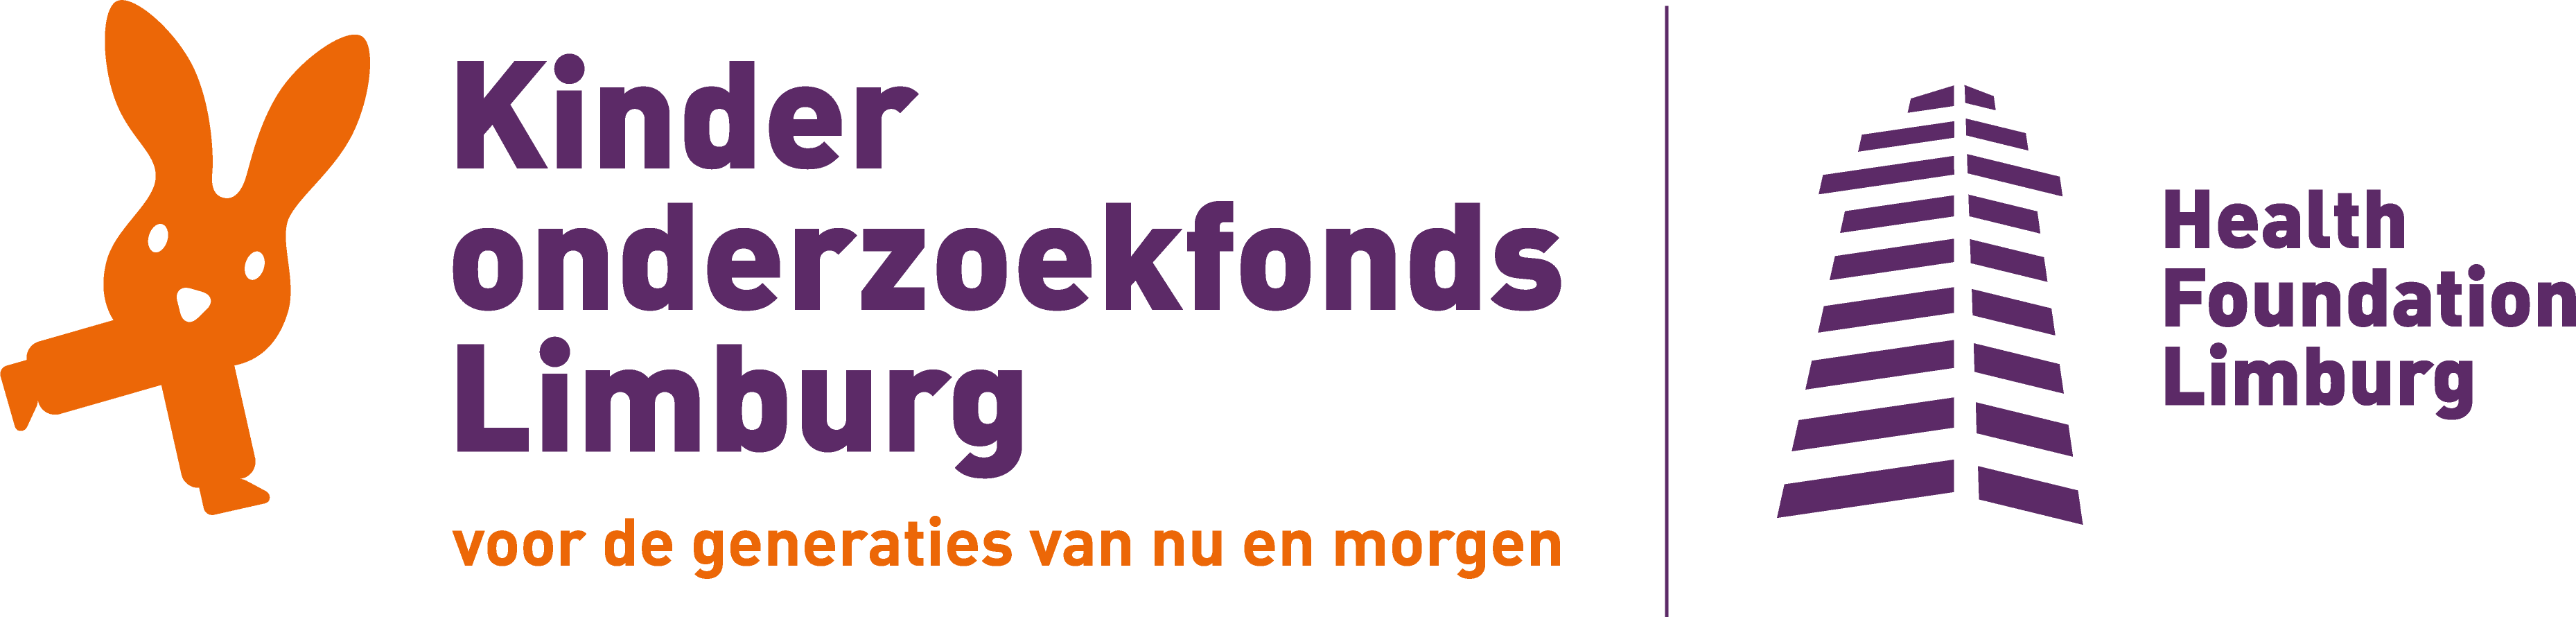 Kinderonderzoekfonds Limburg